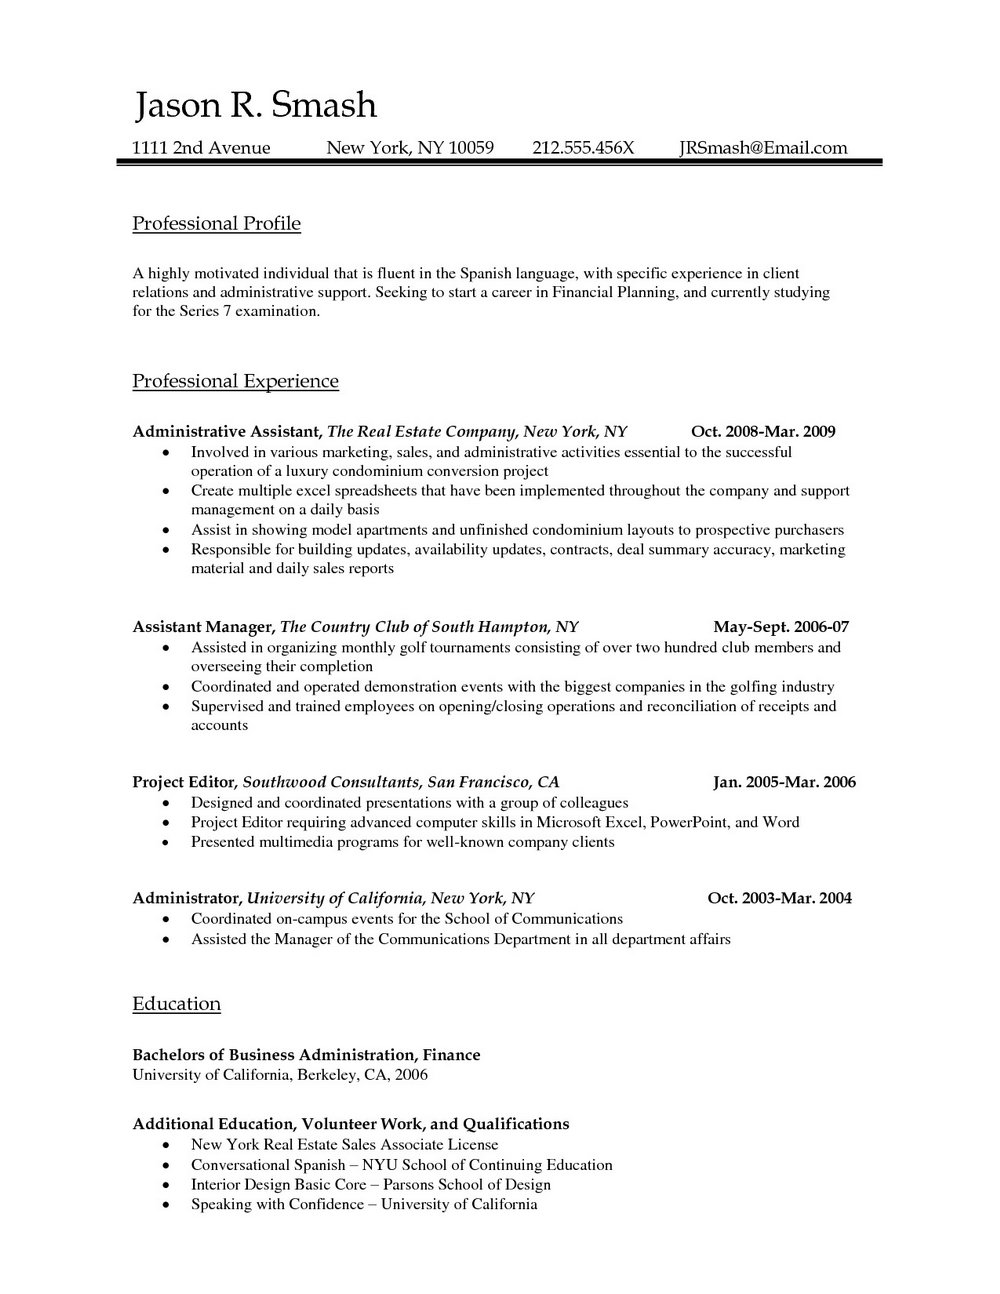 Resume Format Download In Ms Word 2007 For Teachers